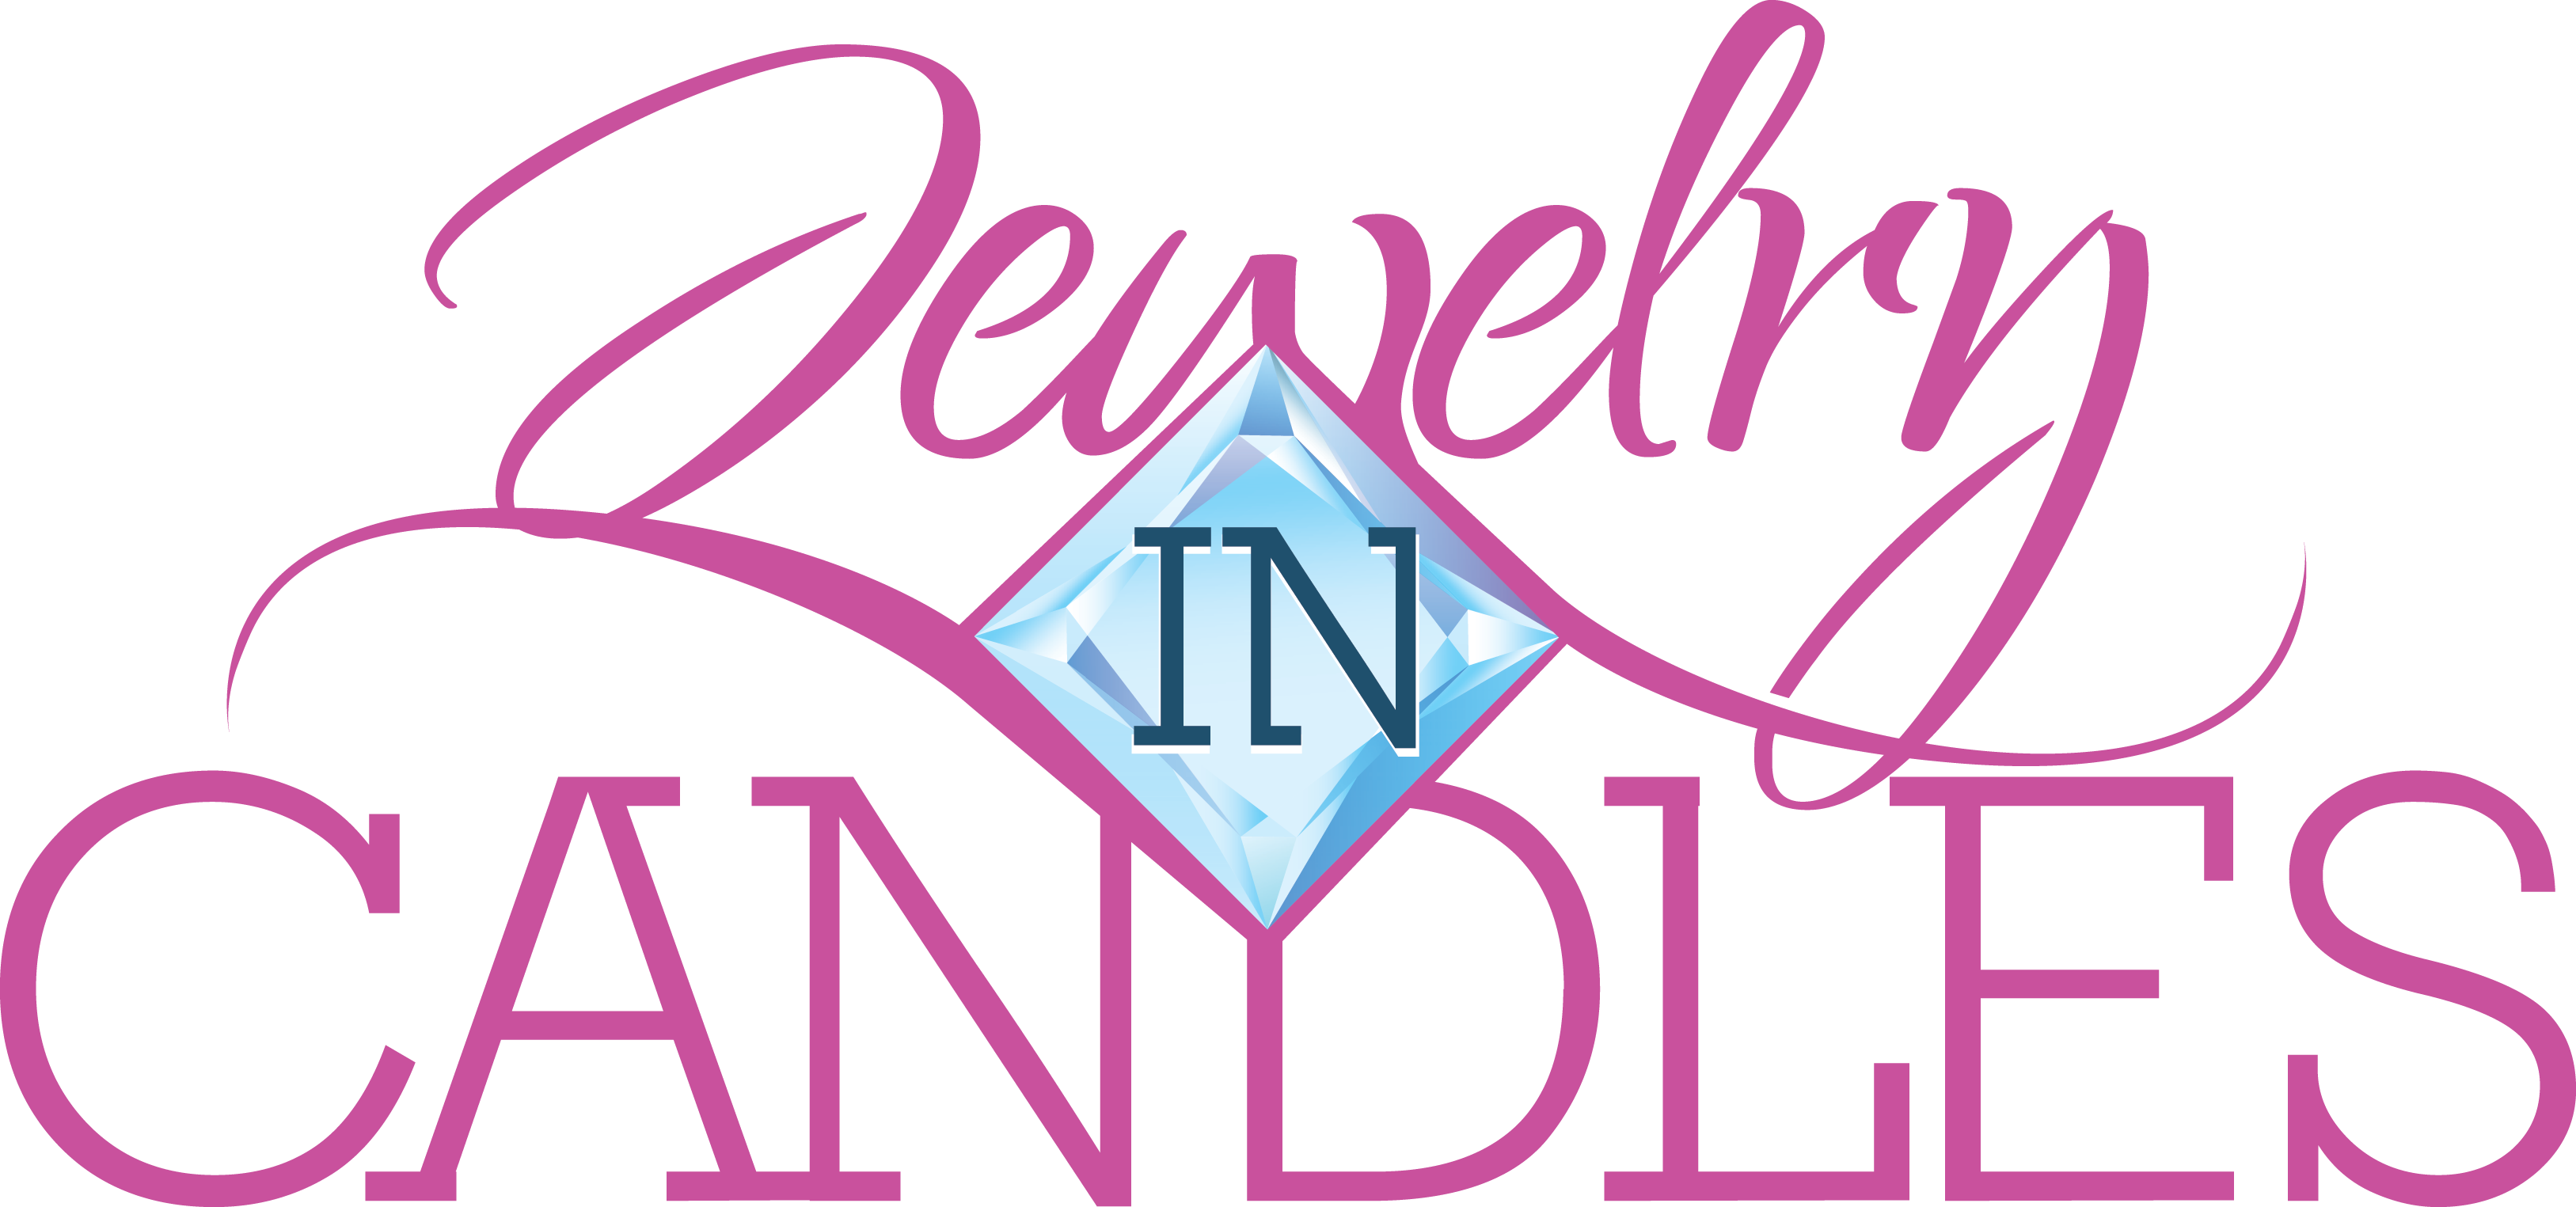 Jewelry in candles png. Jewish milwaukee candlesjewish